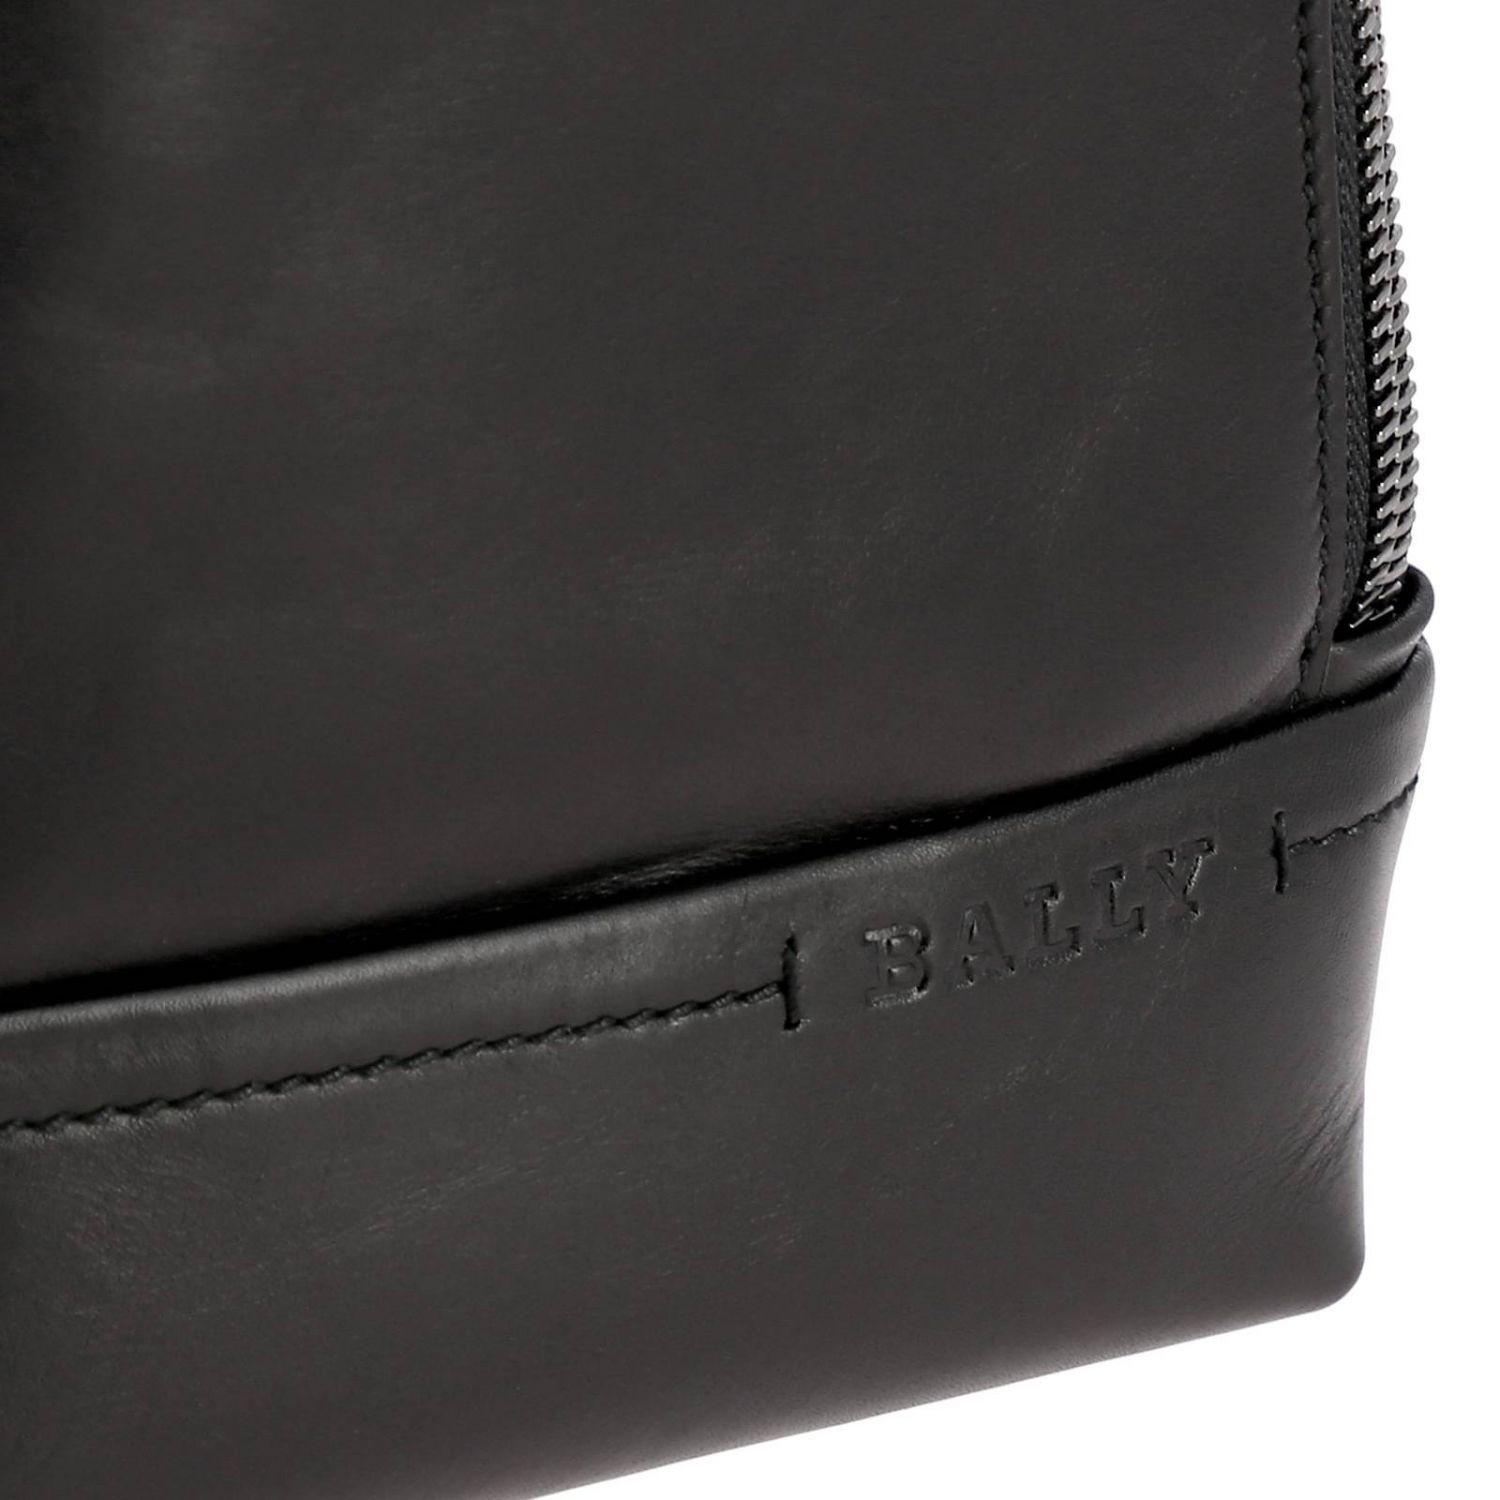 Thorp Bally one shoulder leather backpack with full zip black 5